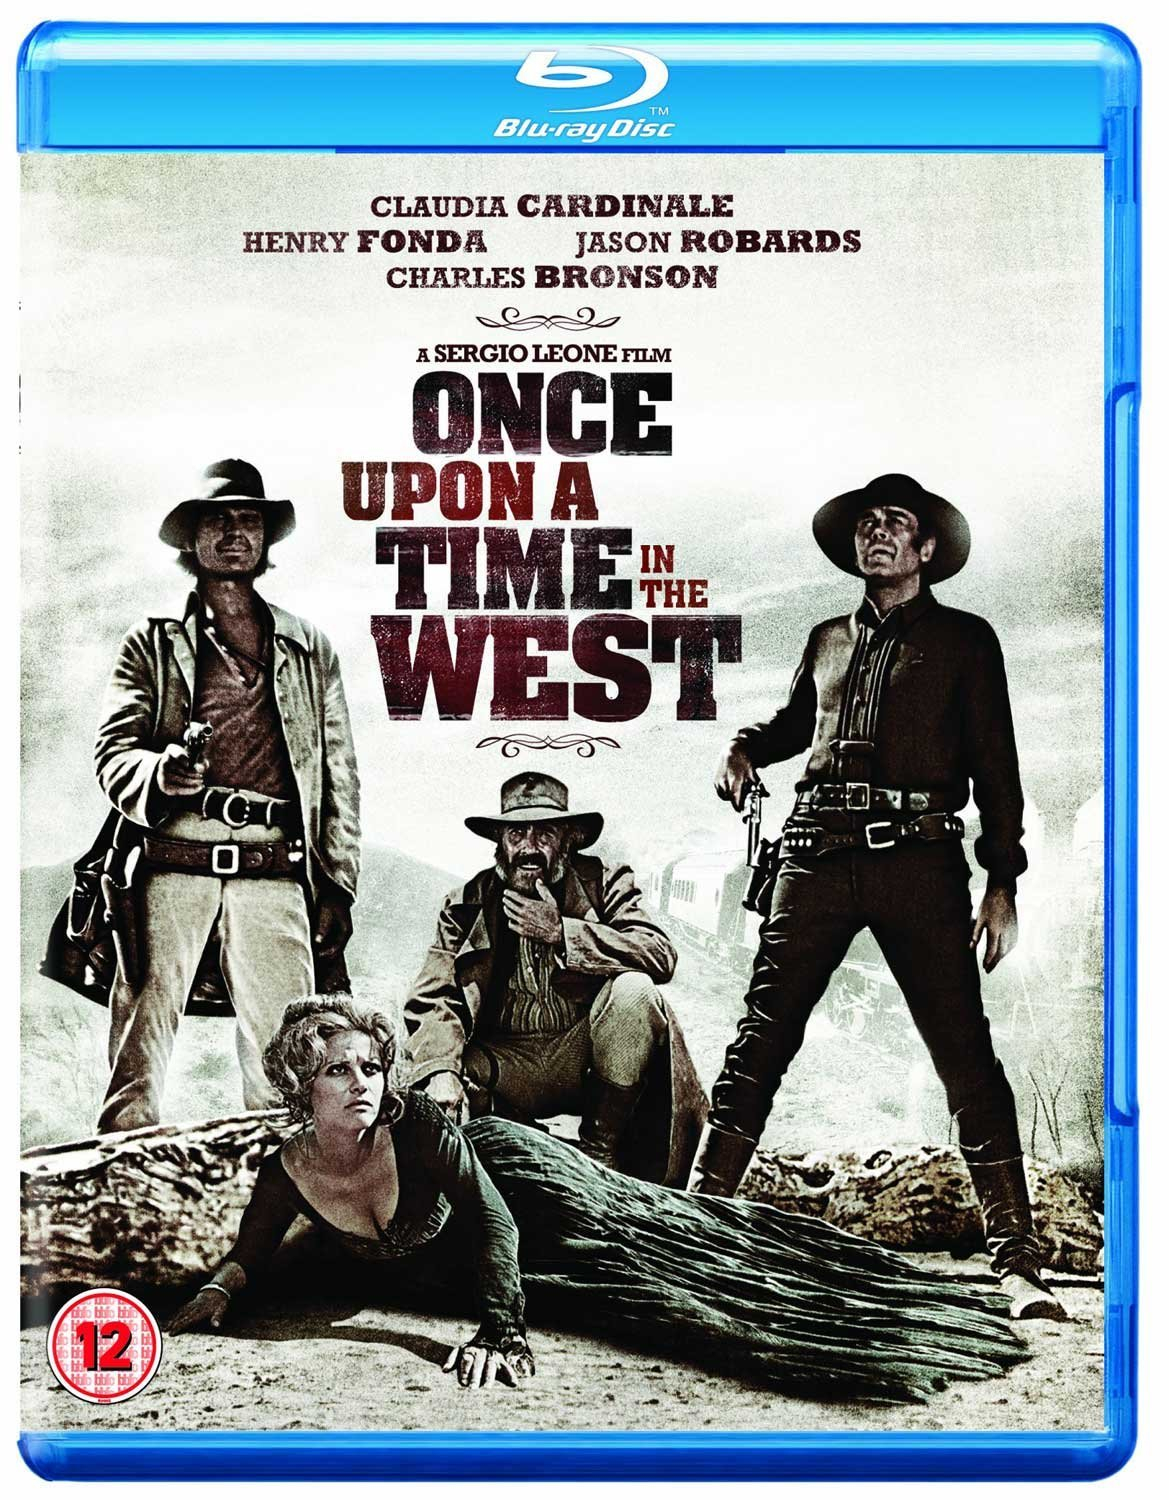 Buy Once Upon a Time in the West - Blu-Ray